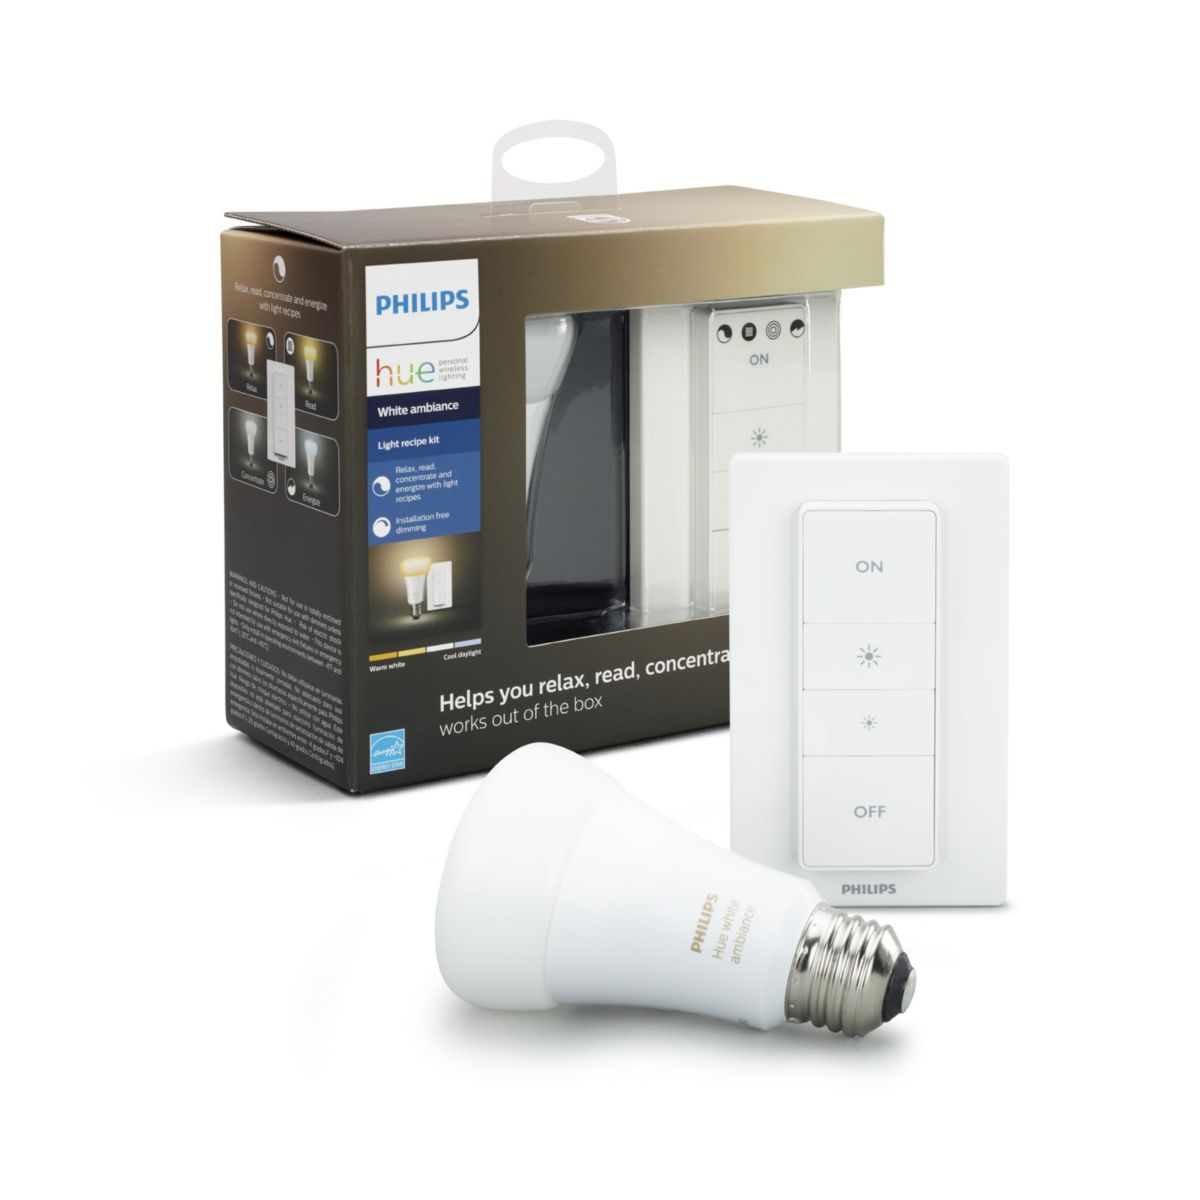 Philips Hub Hue Products Meethue Philips Lighting